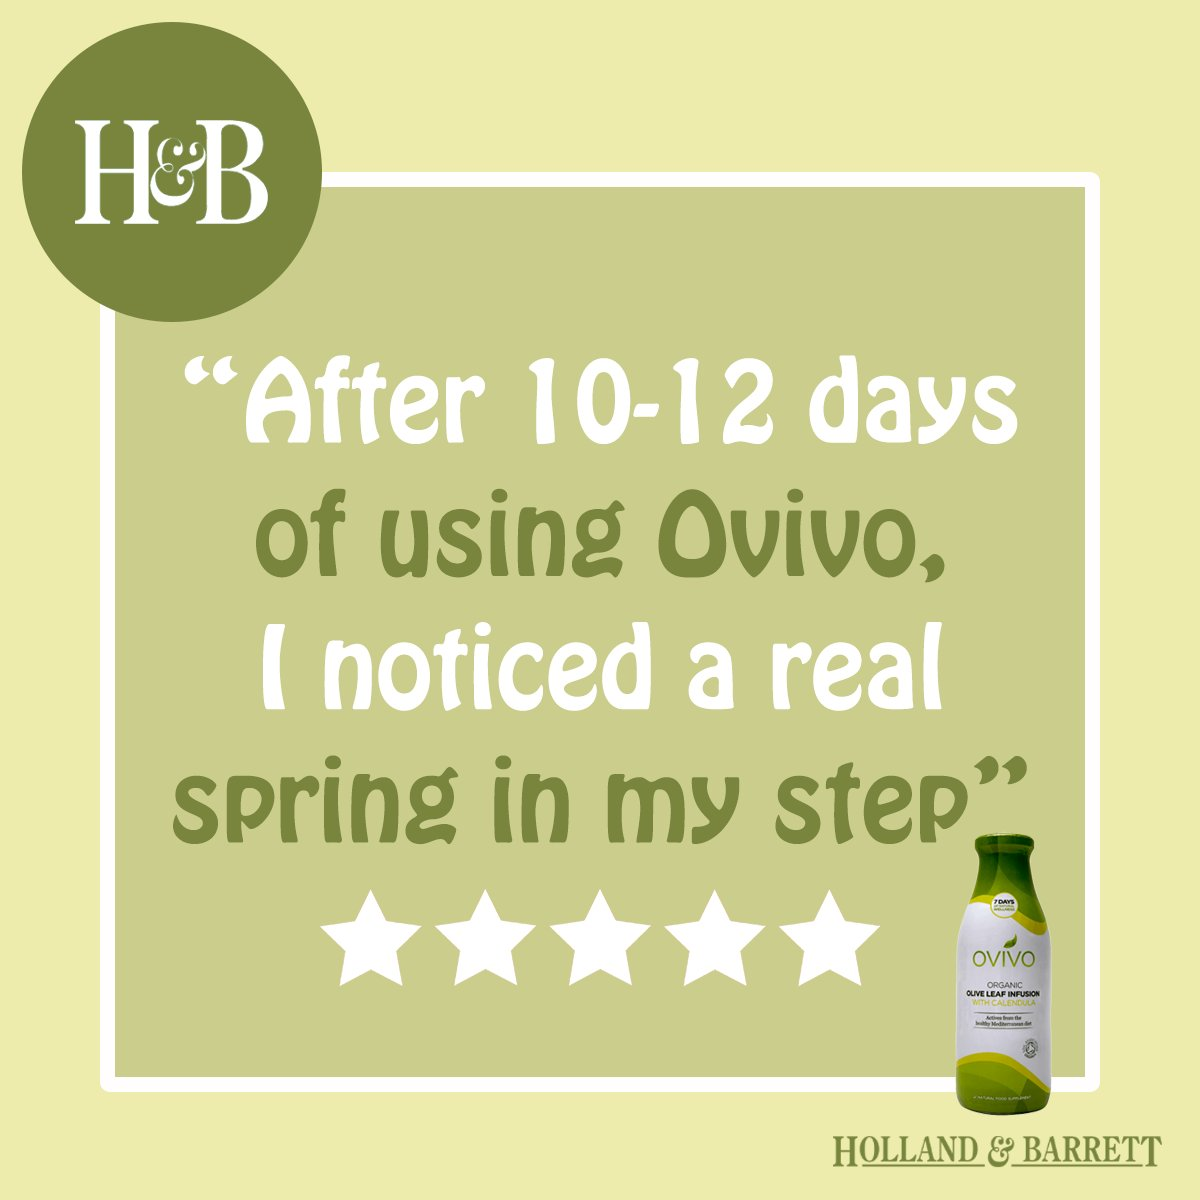 Protect against winter bugs and put a #SpringInYourStep with @Ovivo. Get yours here: https://t.co/82XFflrvxH https://t.co/1Kf5QTViZS